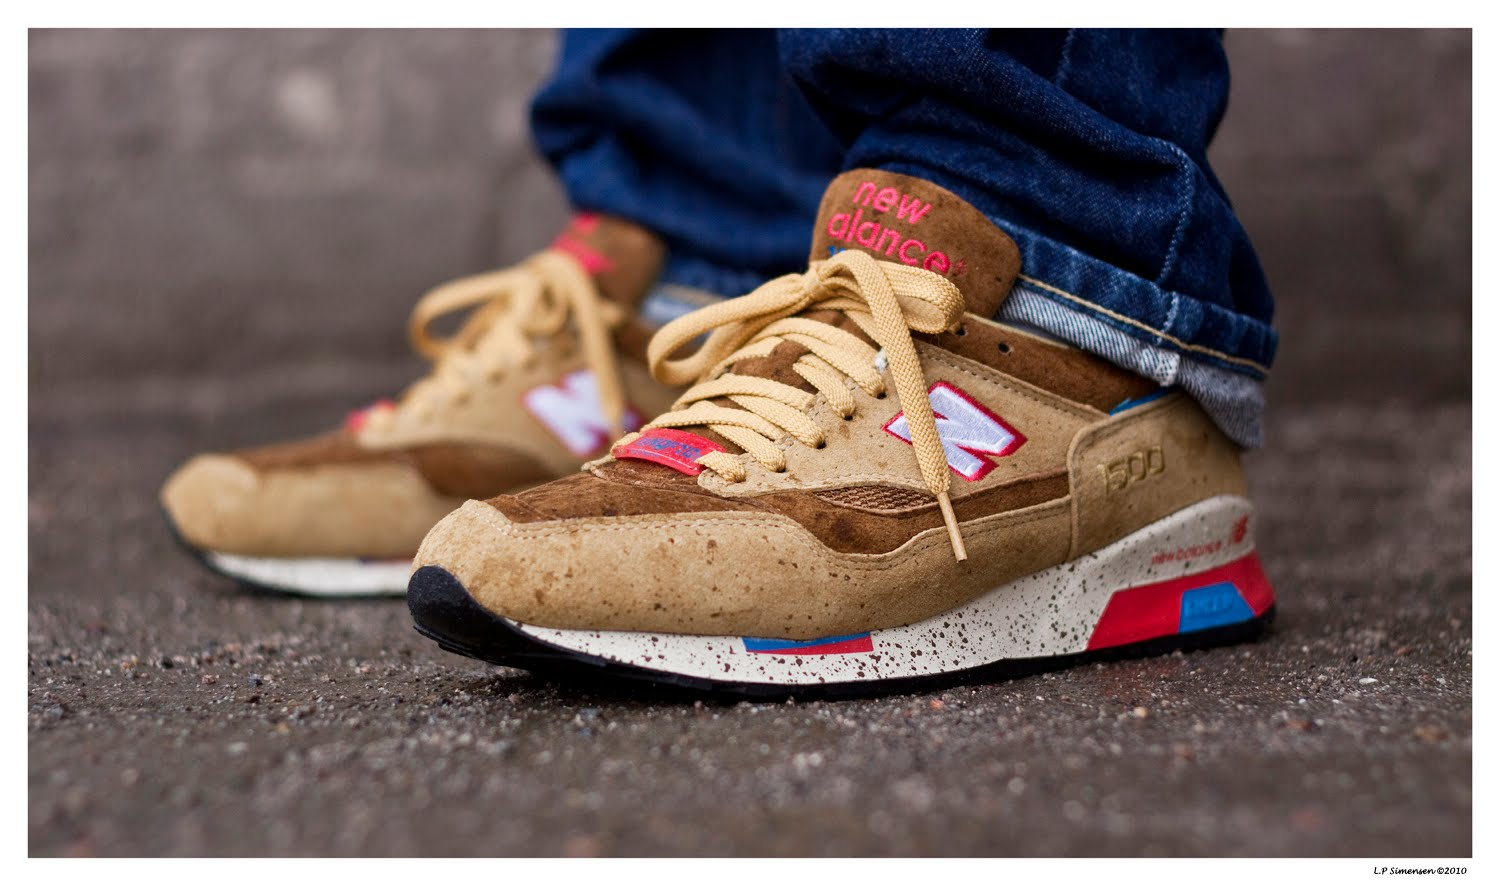 new balance 1500 x undefeated desert storm